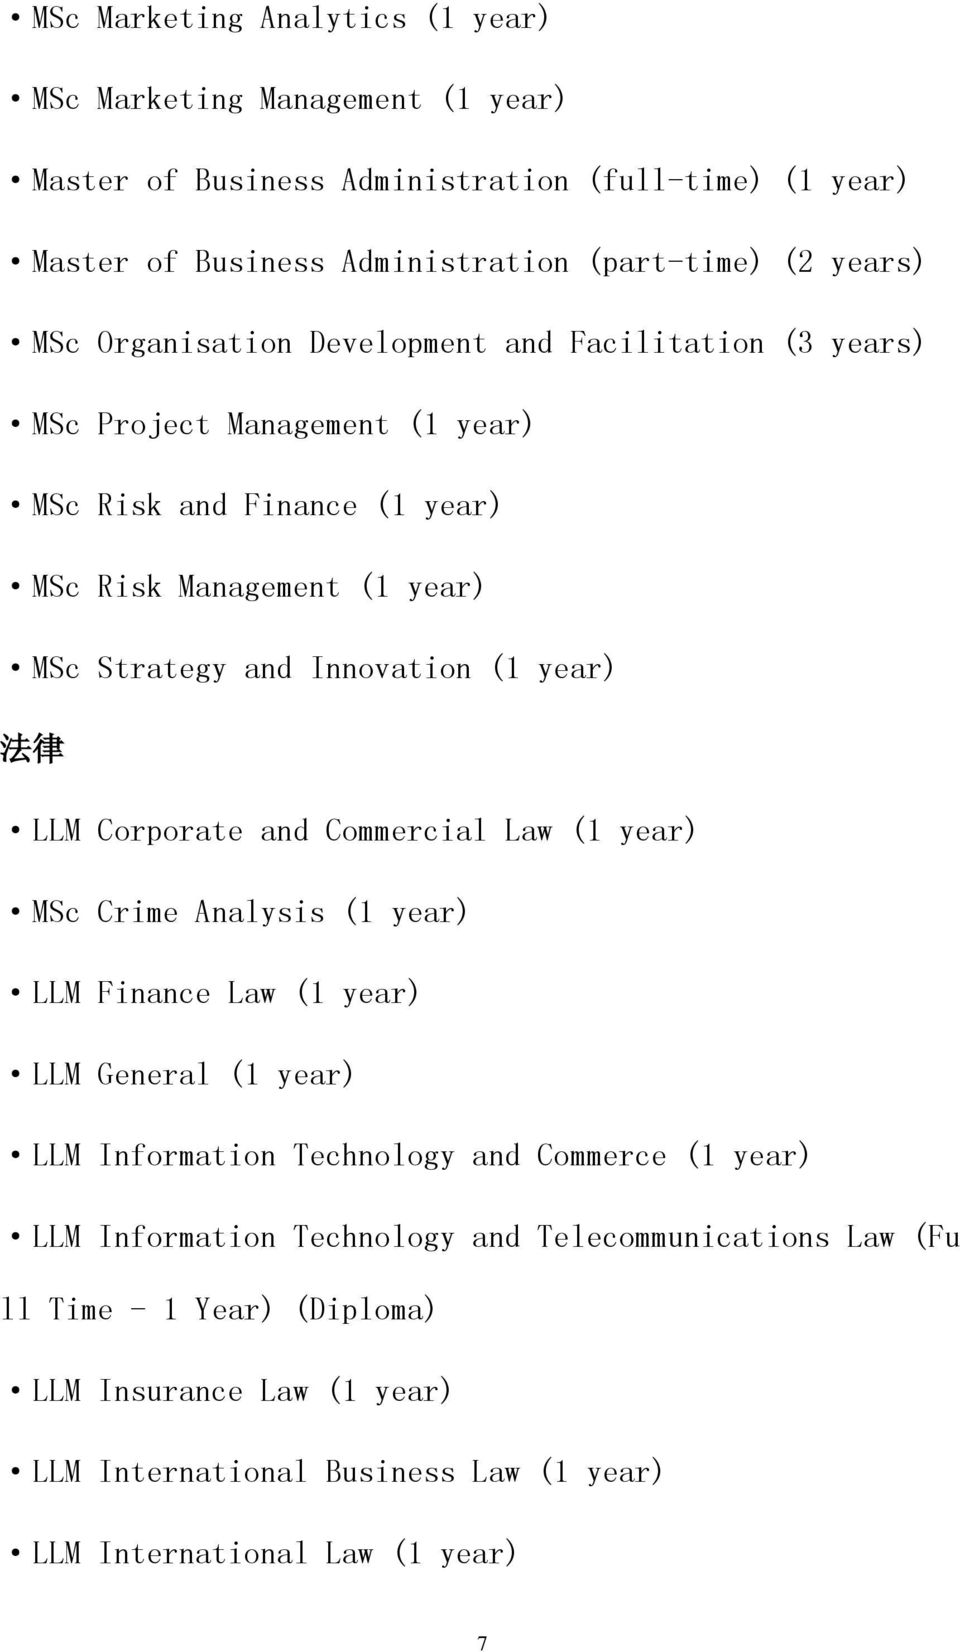 year) 法 律 LLM Corporate and Commercial Law (1 year) MSc Crime Analysis (1 year) LLM Finance Law (1 year) LLM General (1 year) LLM Information Technology and Commerce (1 year) LLM